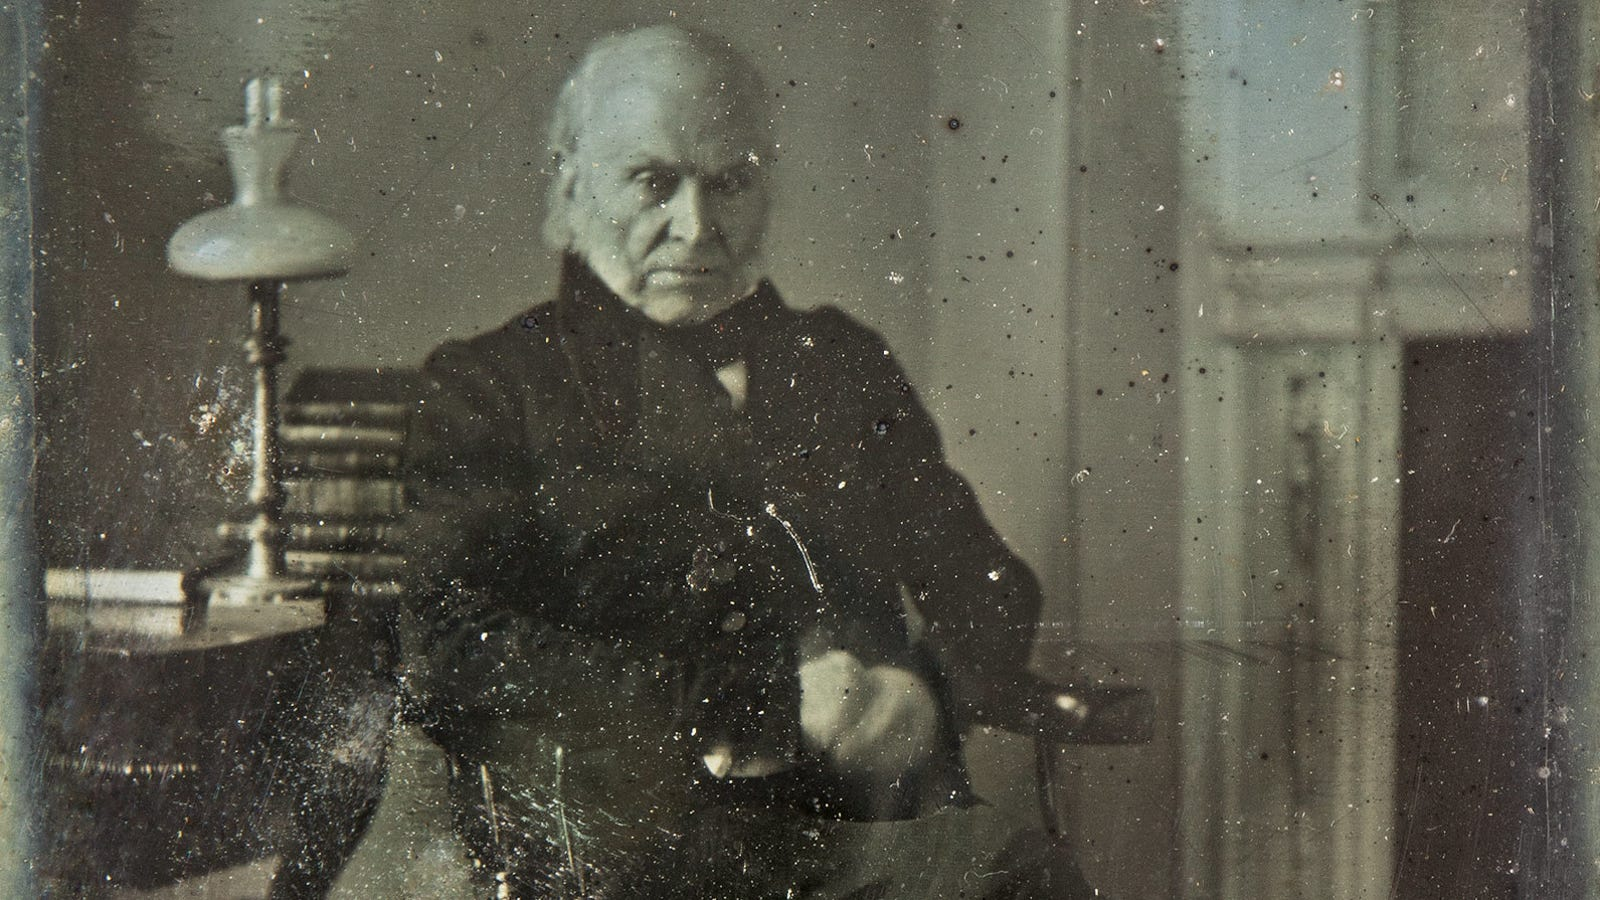 Lost for Over a Century, This Is Now the Oldest Known Original Photo of a US President